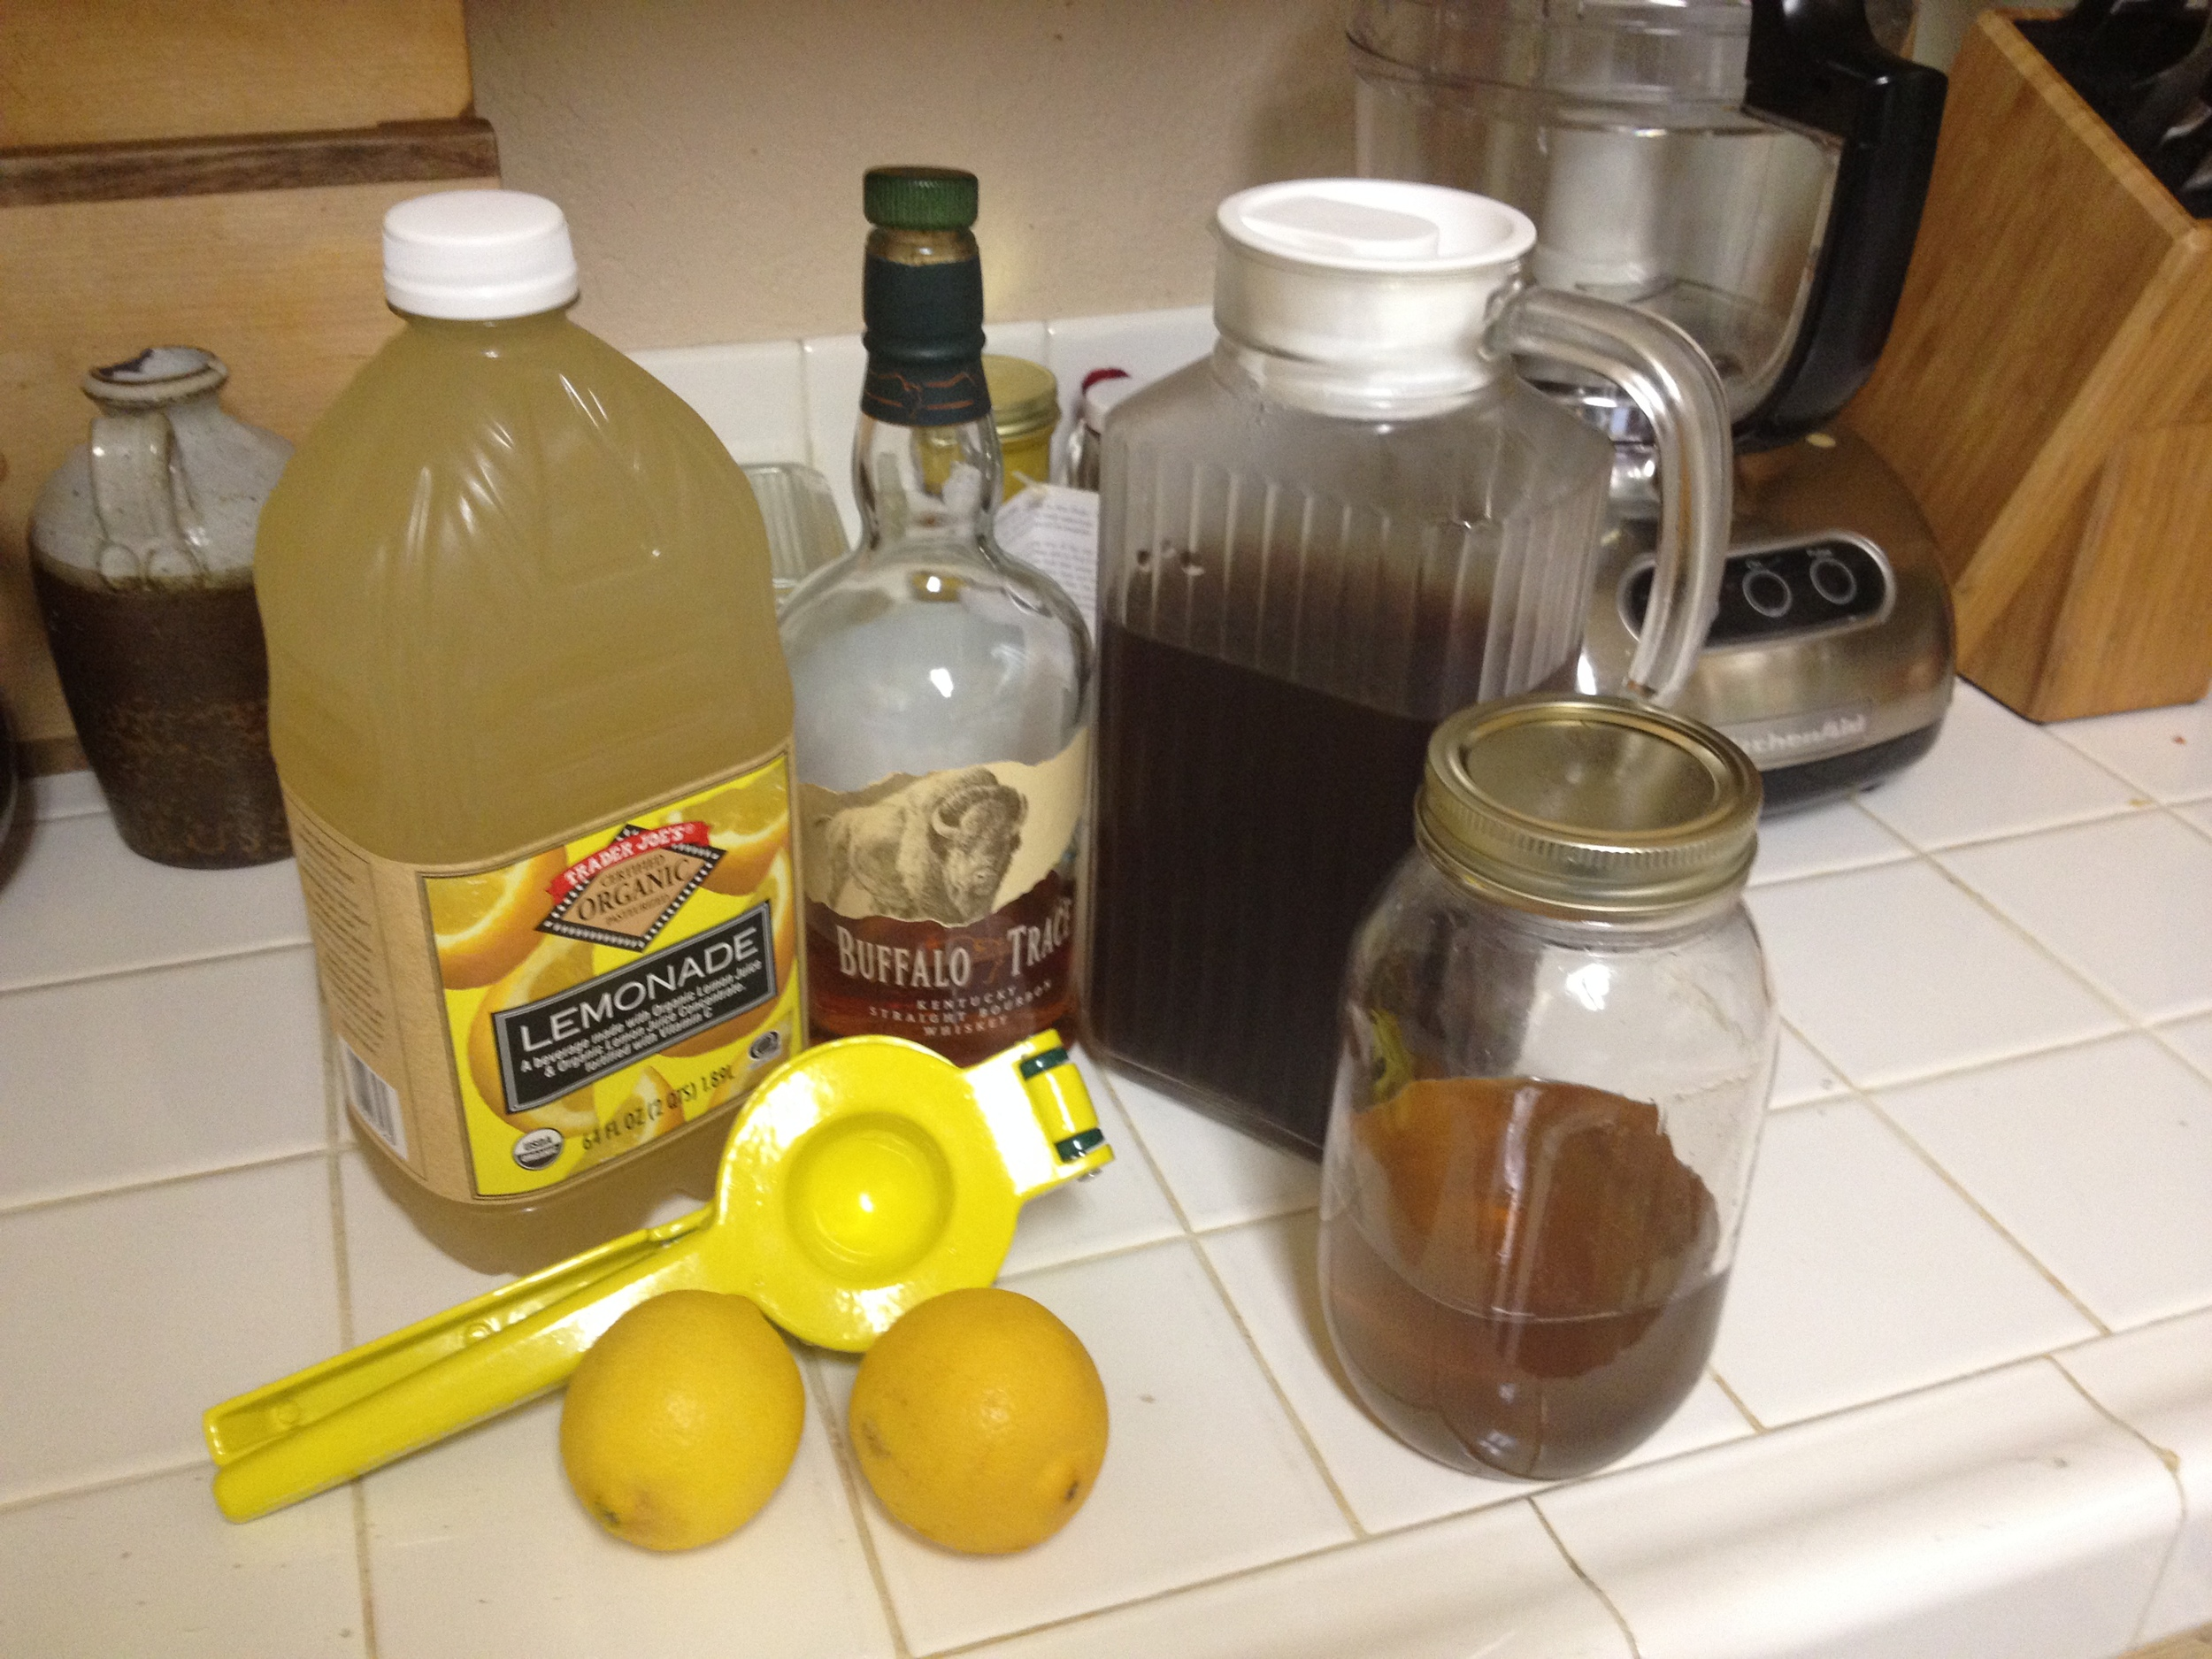 The ingredients (from left): lemonade, lemons, bourbon, iced tea, simple syrup